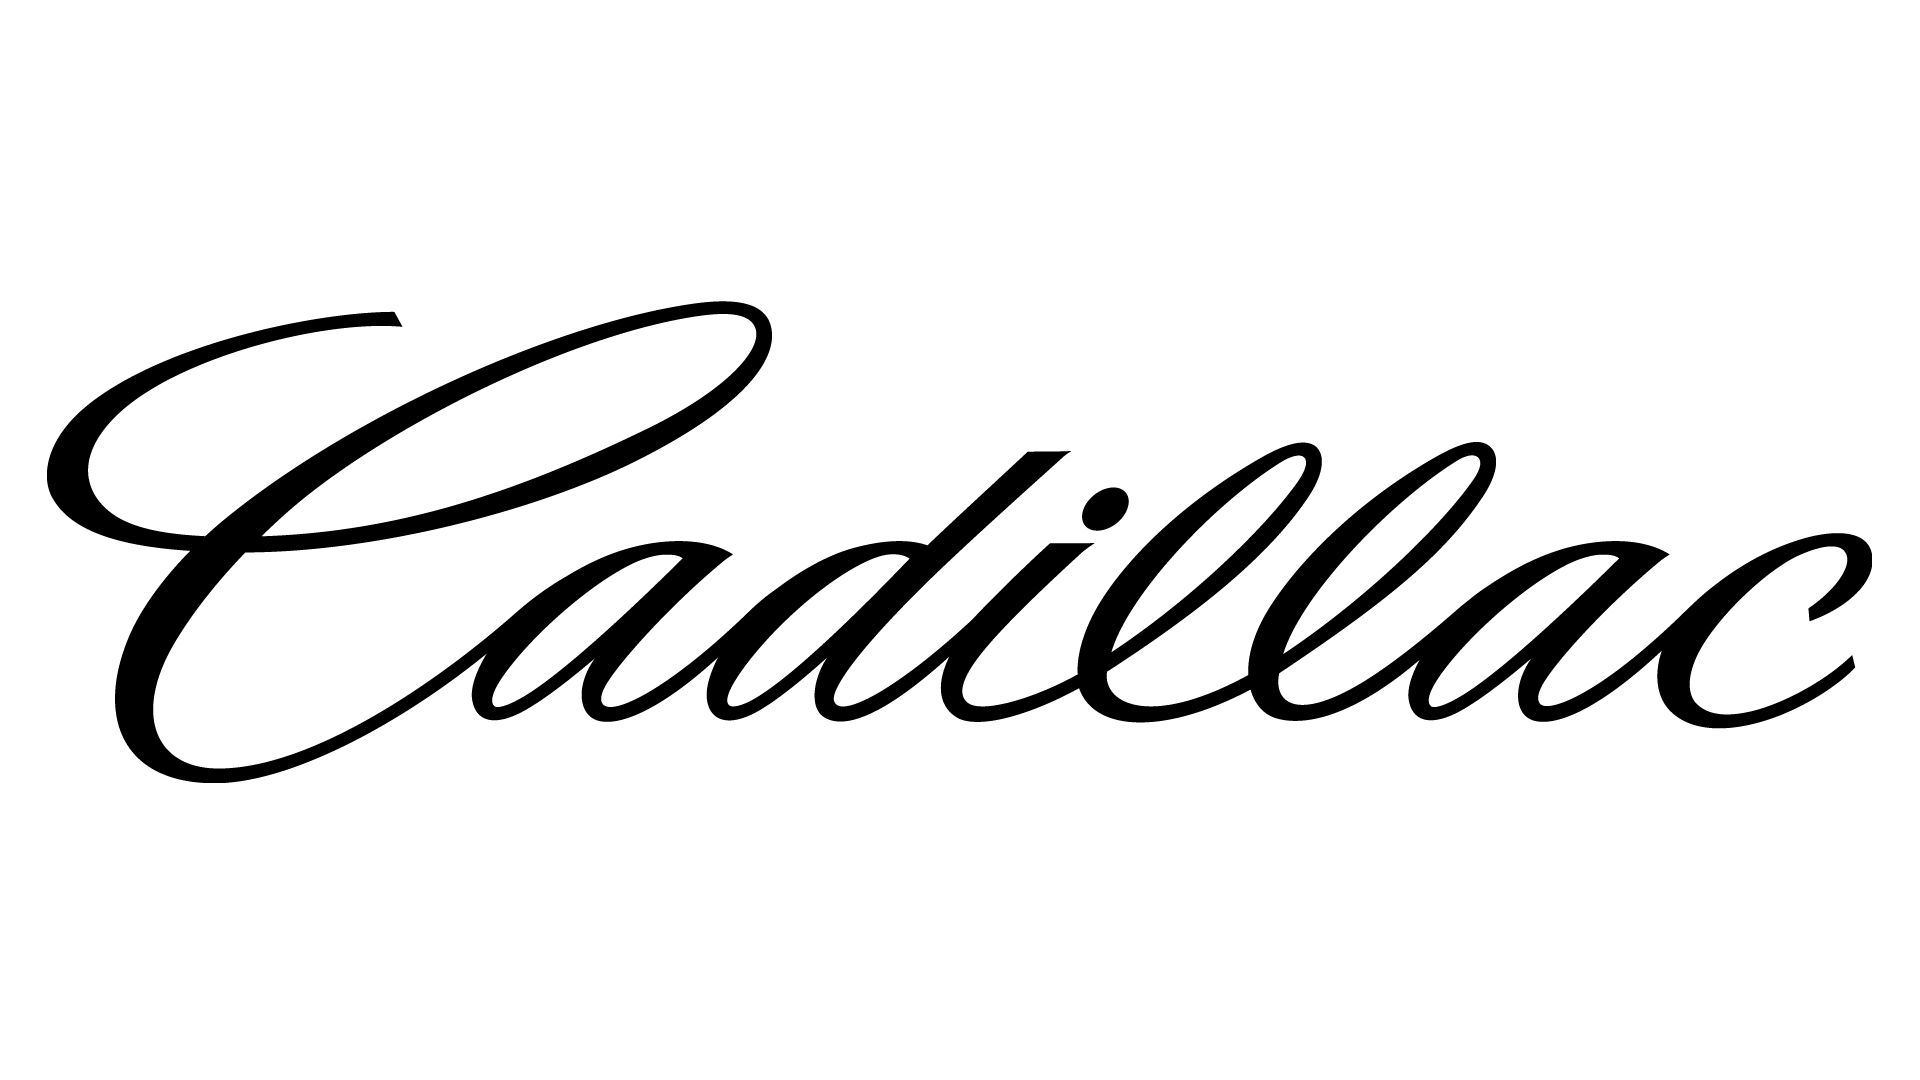 Cadillac Text Logo1920x1080 (HD 1080p)